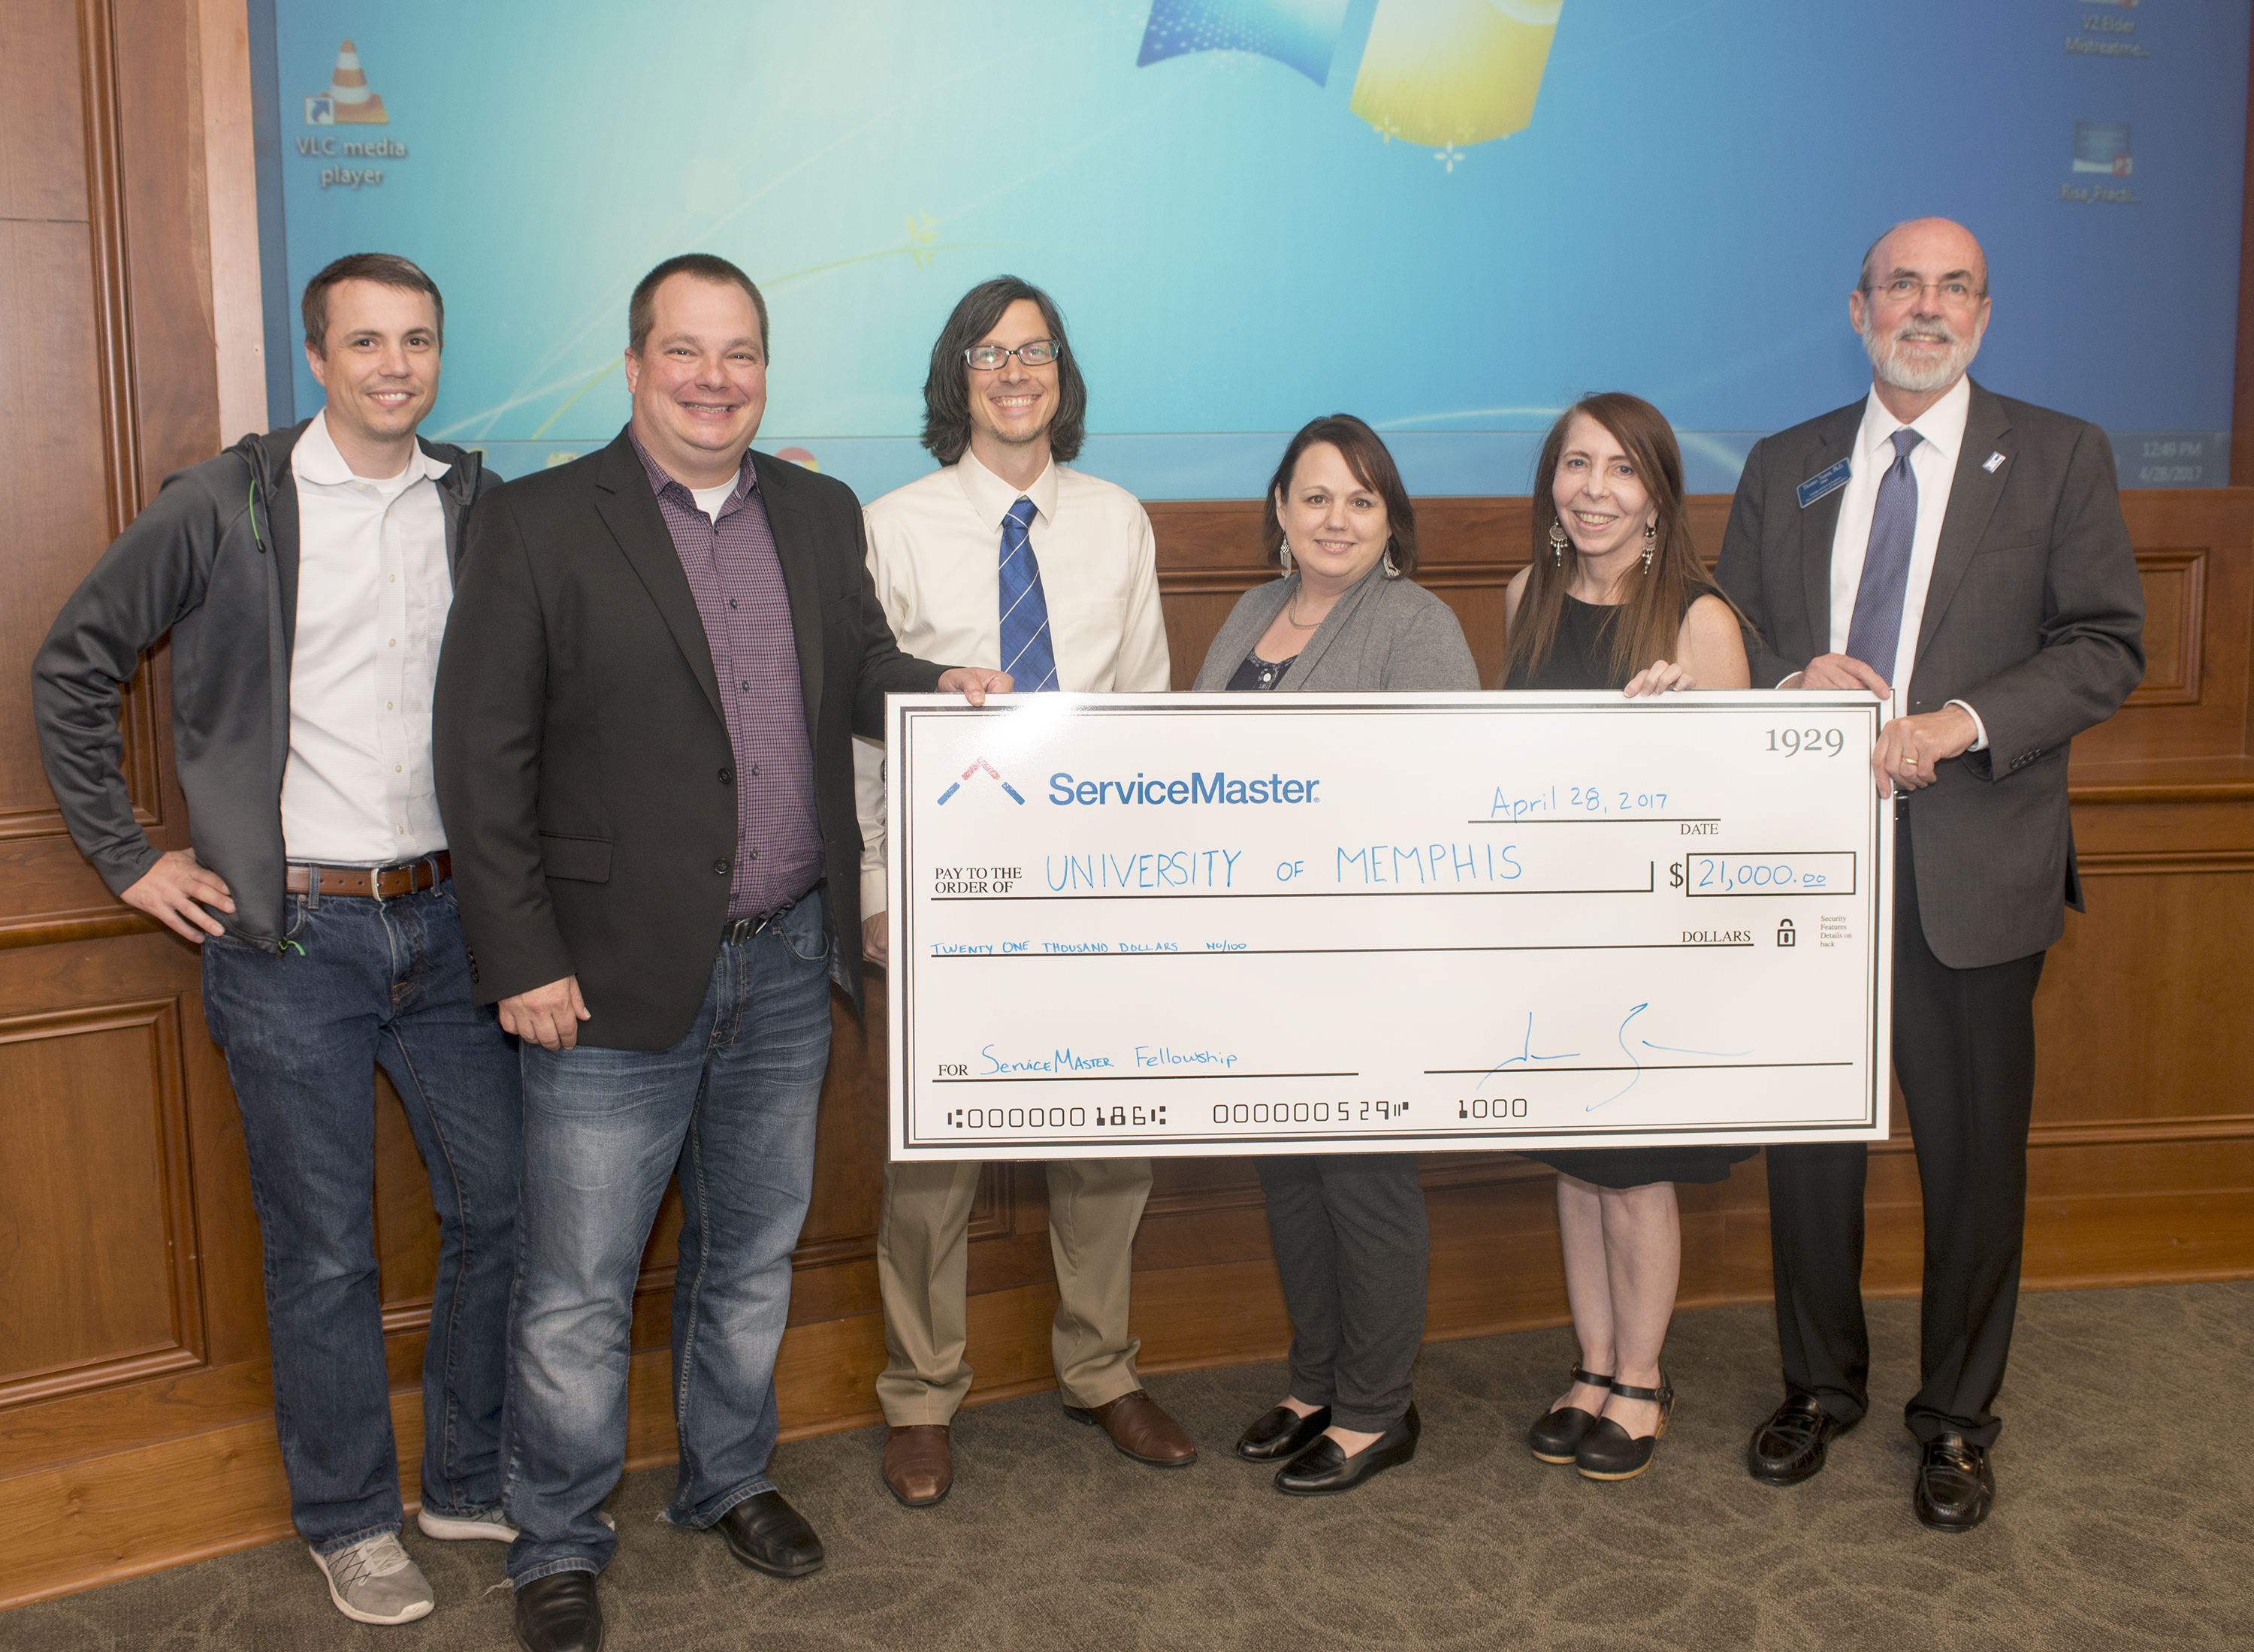 Jamie Smith, CIO of ServiceMaster, and leaders from his Customer Experience team, present the first of two anthropology scholarship grants to Tom Nenon, Dean of the College of Arts & Sciences at the University of Memphis. (Photo: Business Wire)